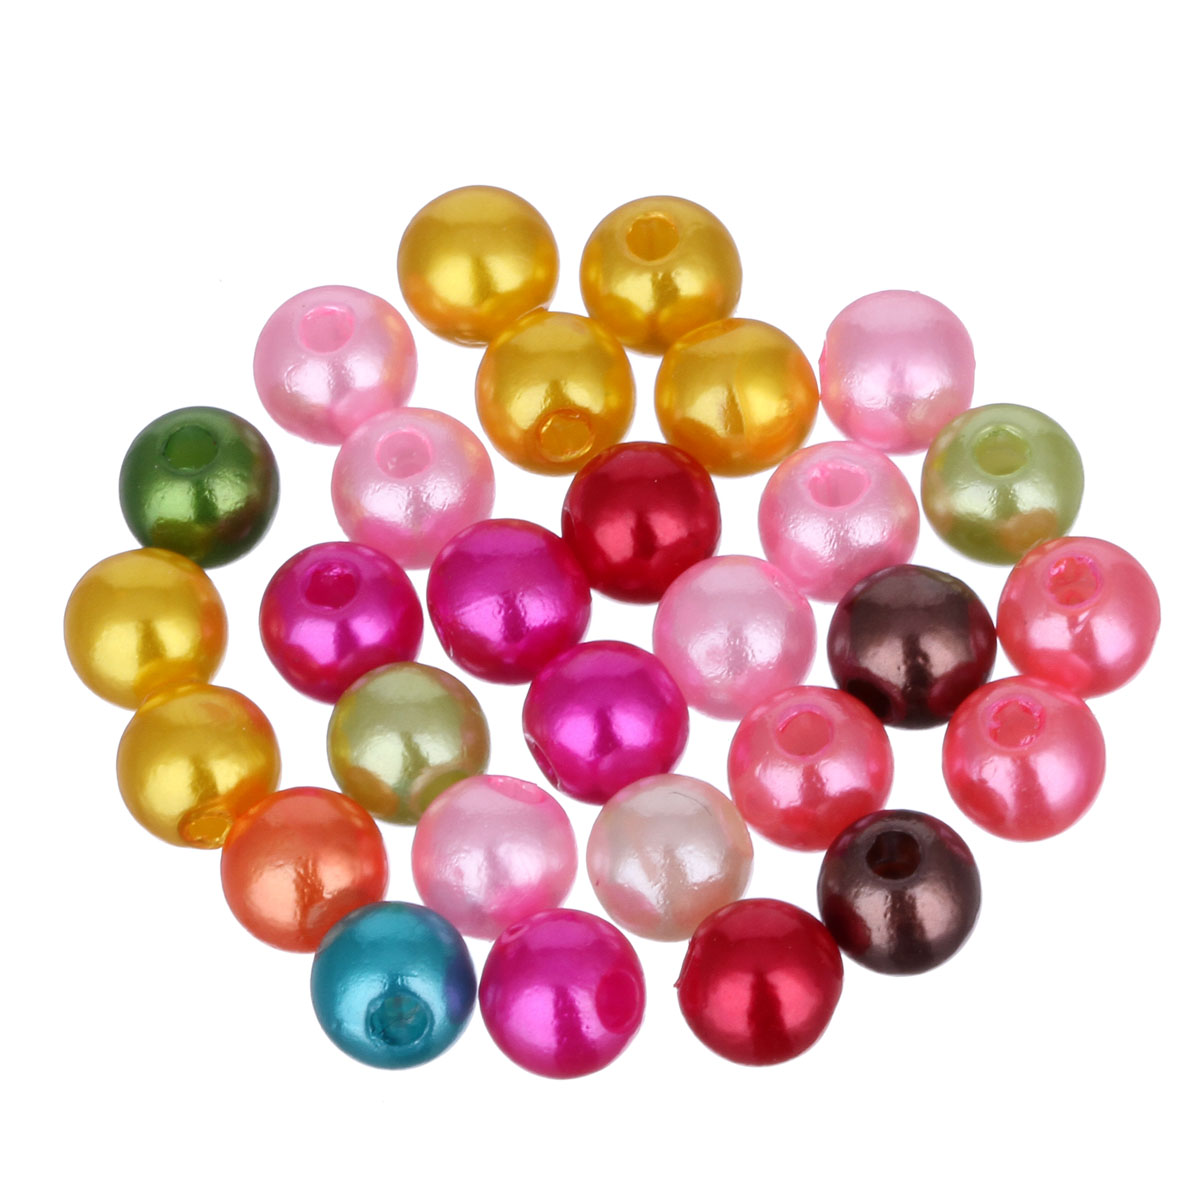 Гаджет  200pcs/lot Cheap 5A Quality! 5MM Mixed Color Fashion Round Acrylic Pearl Spacer Loose Beads DIY Jewelry Making Wholesale LIF None Ювелирные изделия и часы